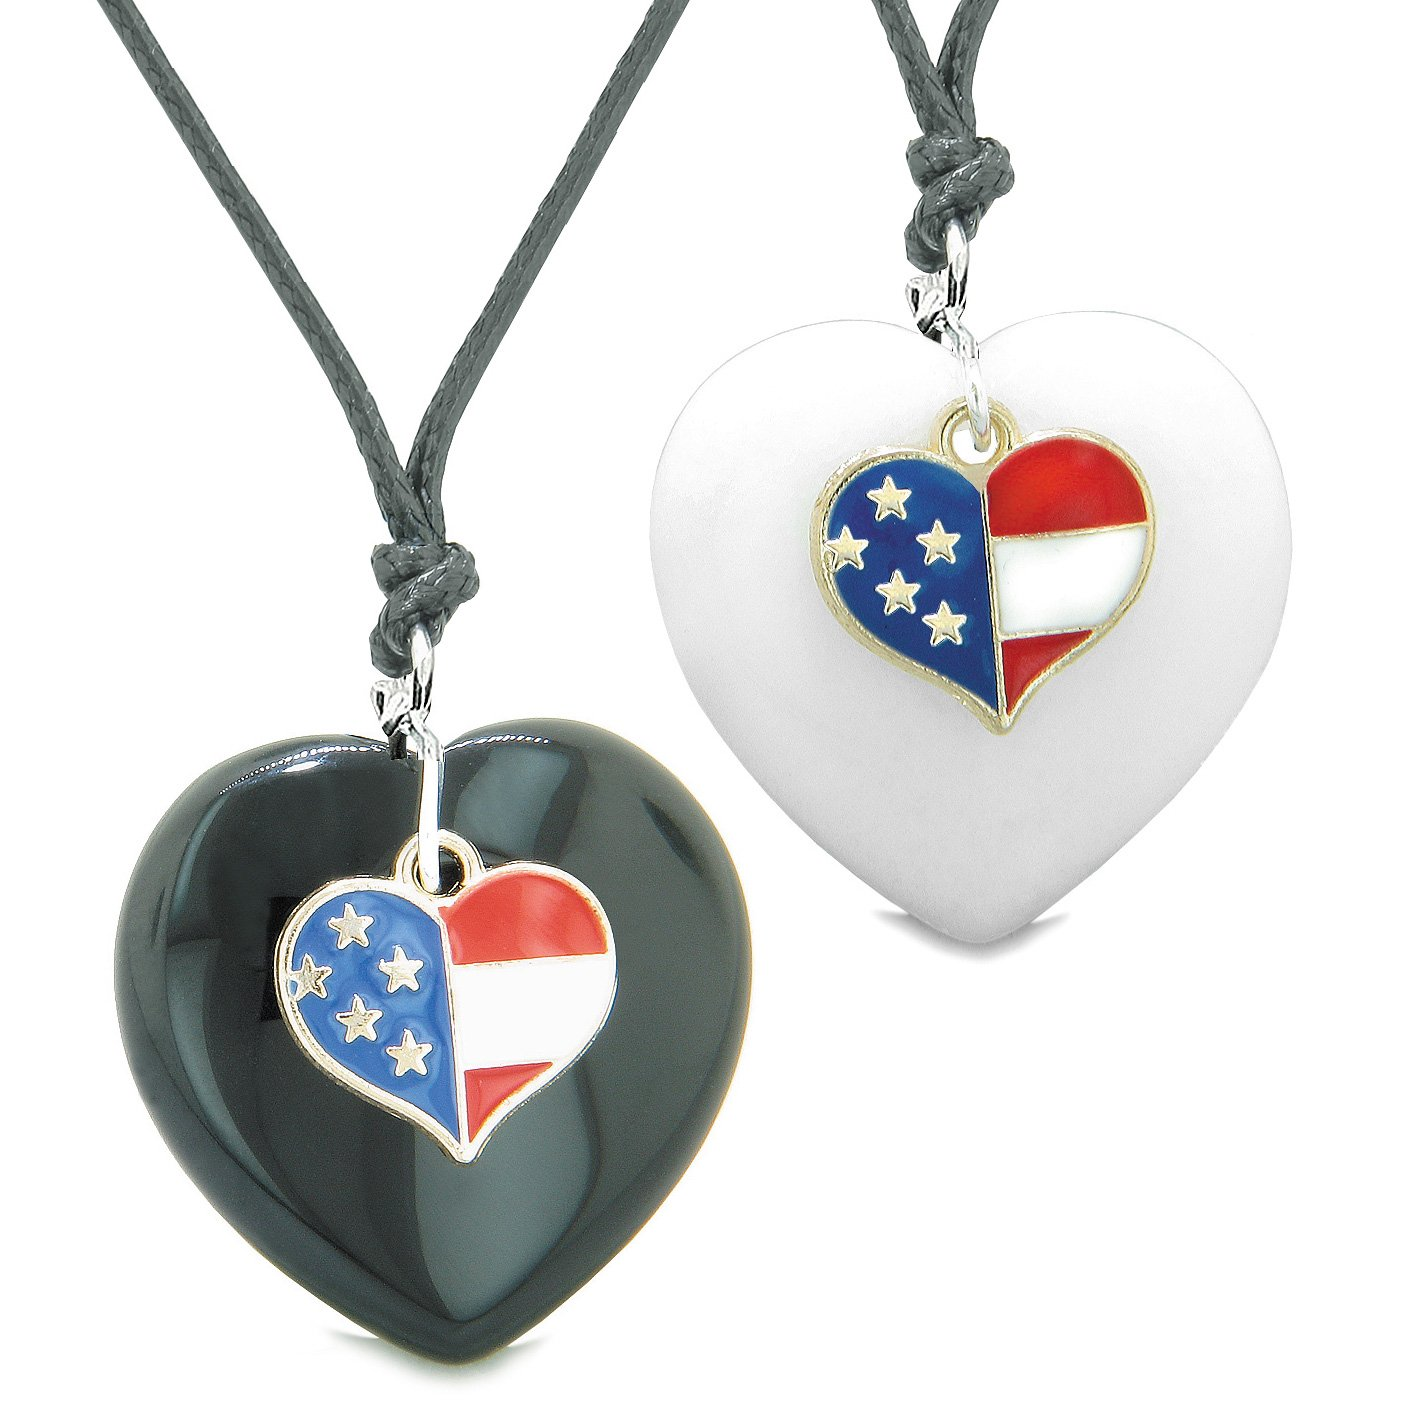 Proud USA Flag Super Heart Charm Love Couples or BFF Set Black Agate White Quartz Amulet Cord Necklaces